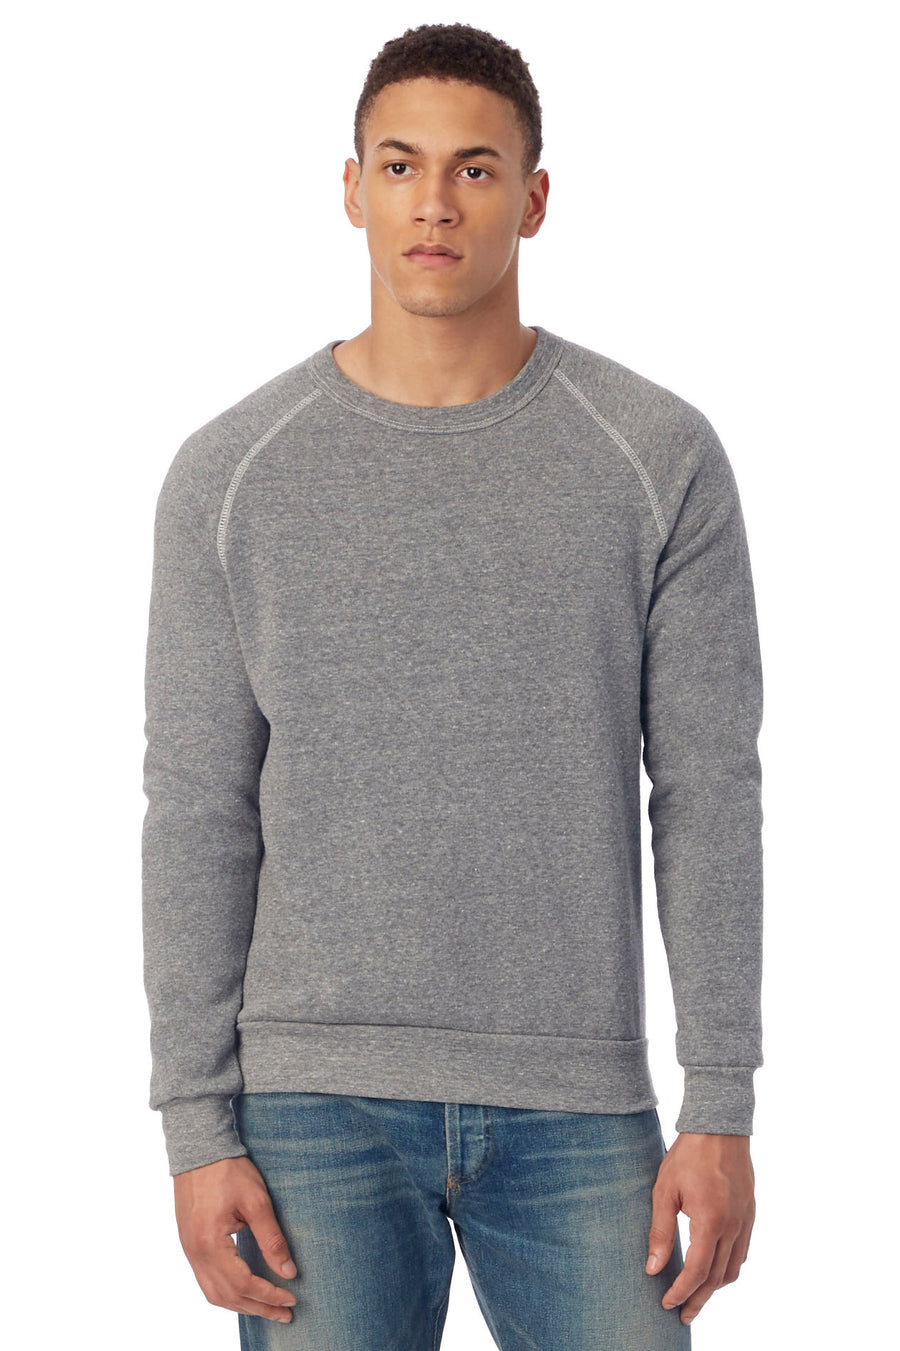 Champ Eco-Fleece Sweatshirt - Eco Grey - Pavilion